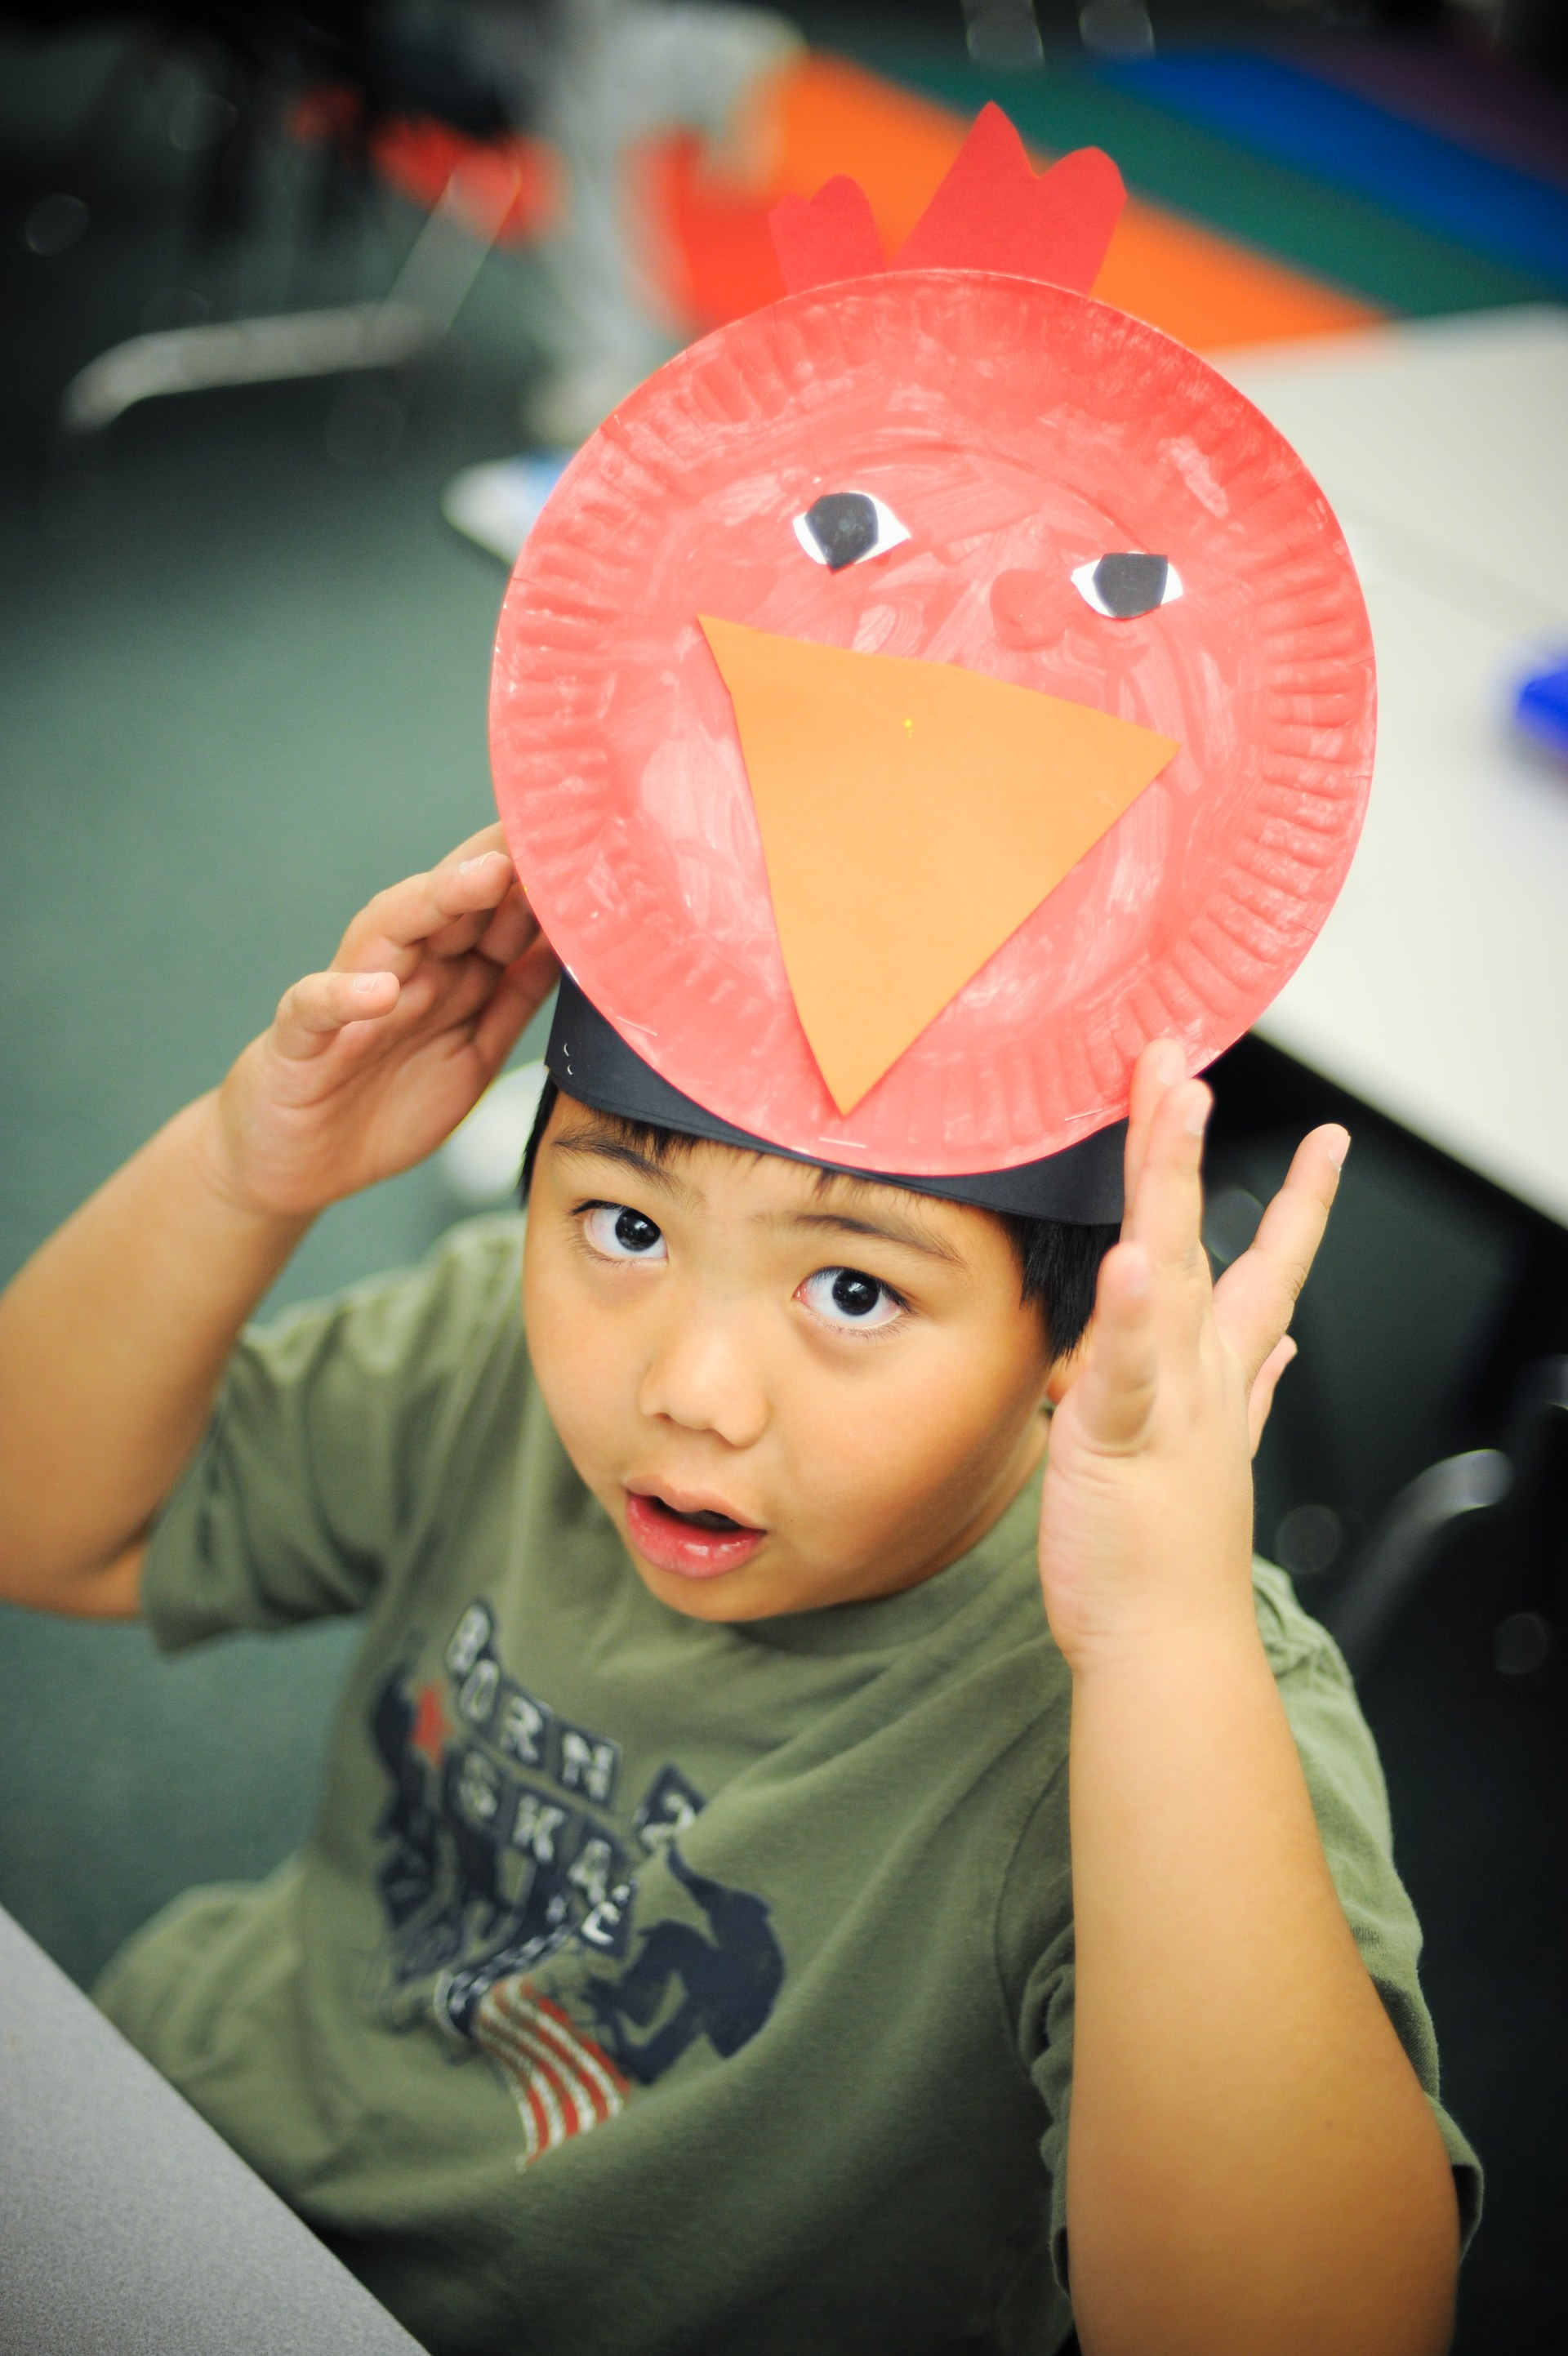 A boy showing his bird mask.